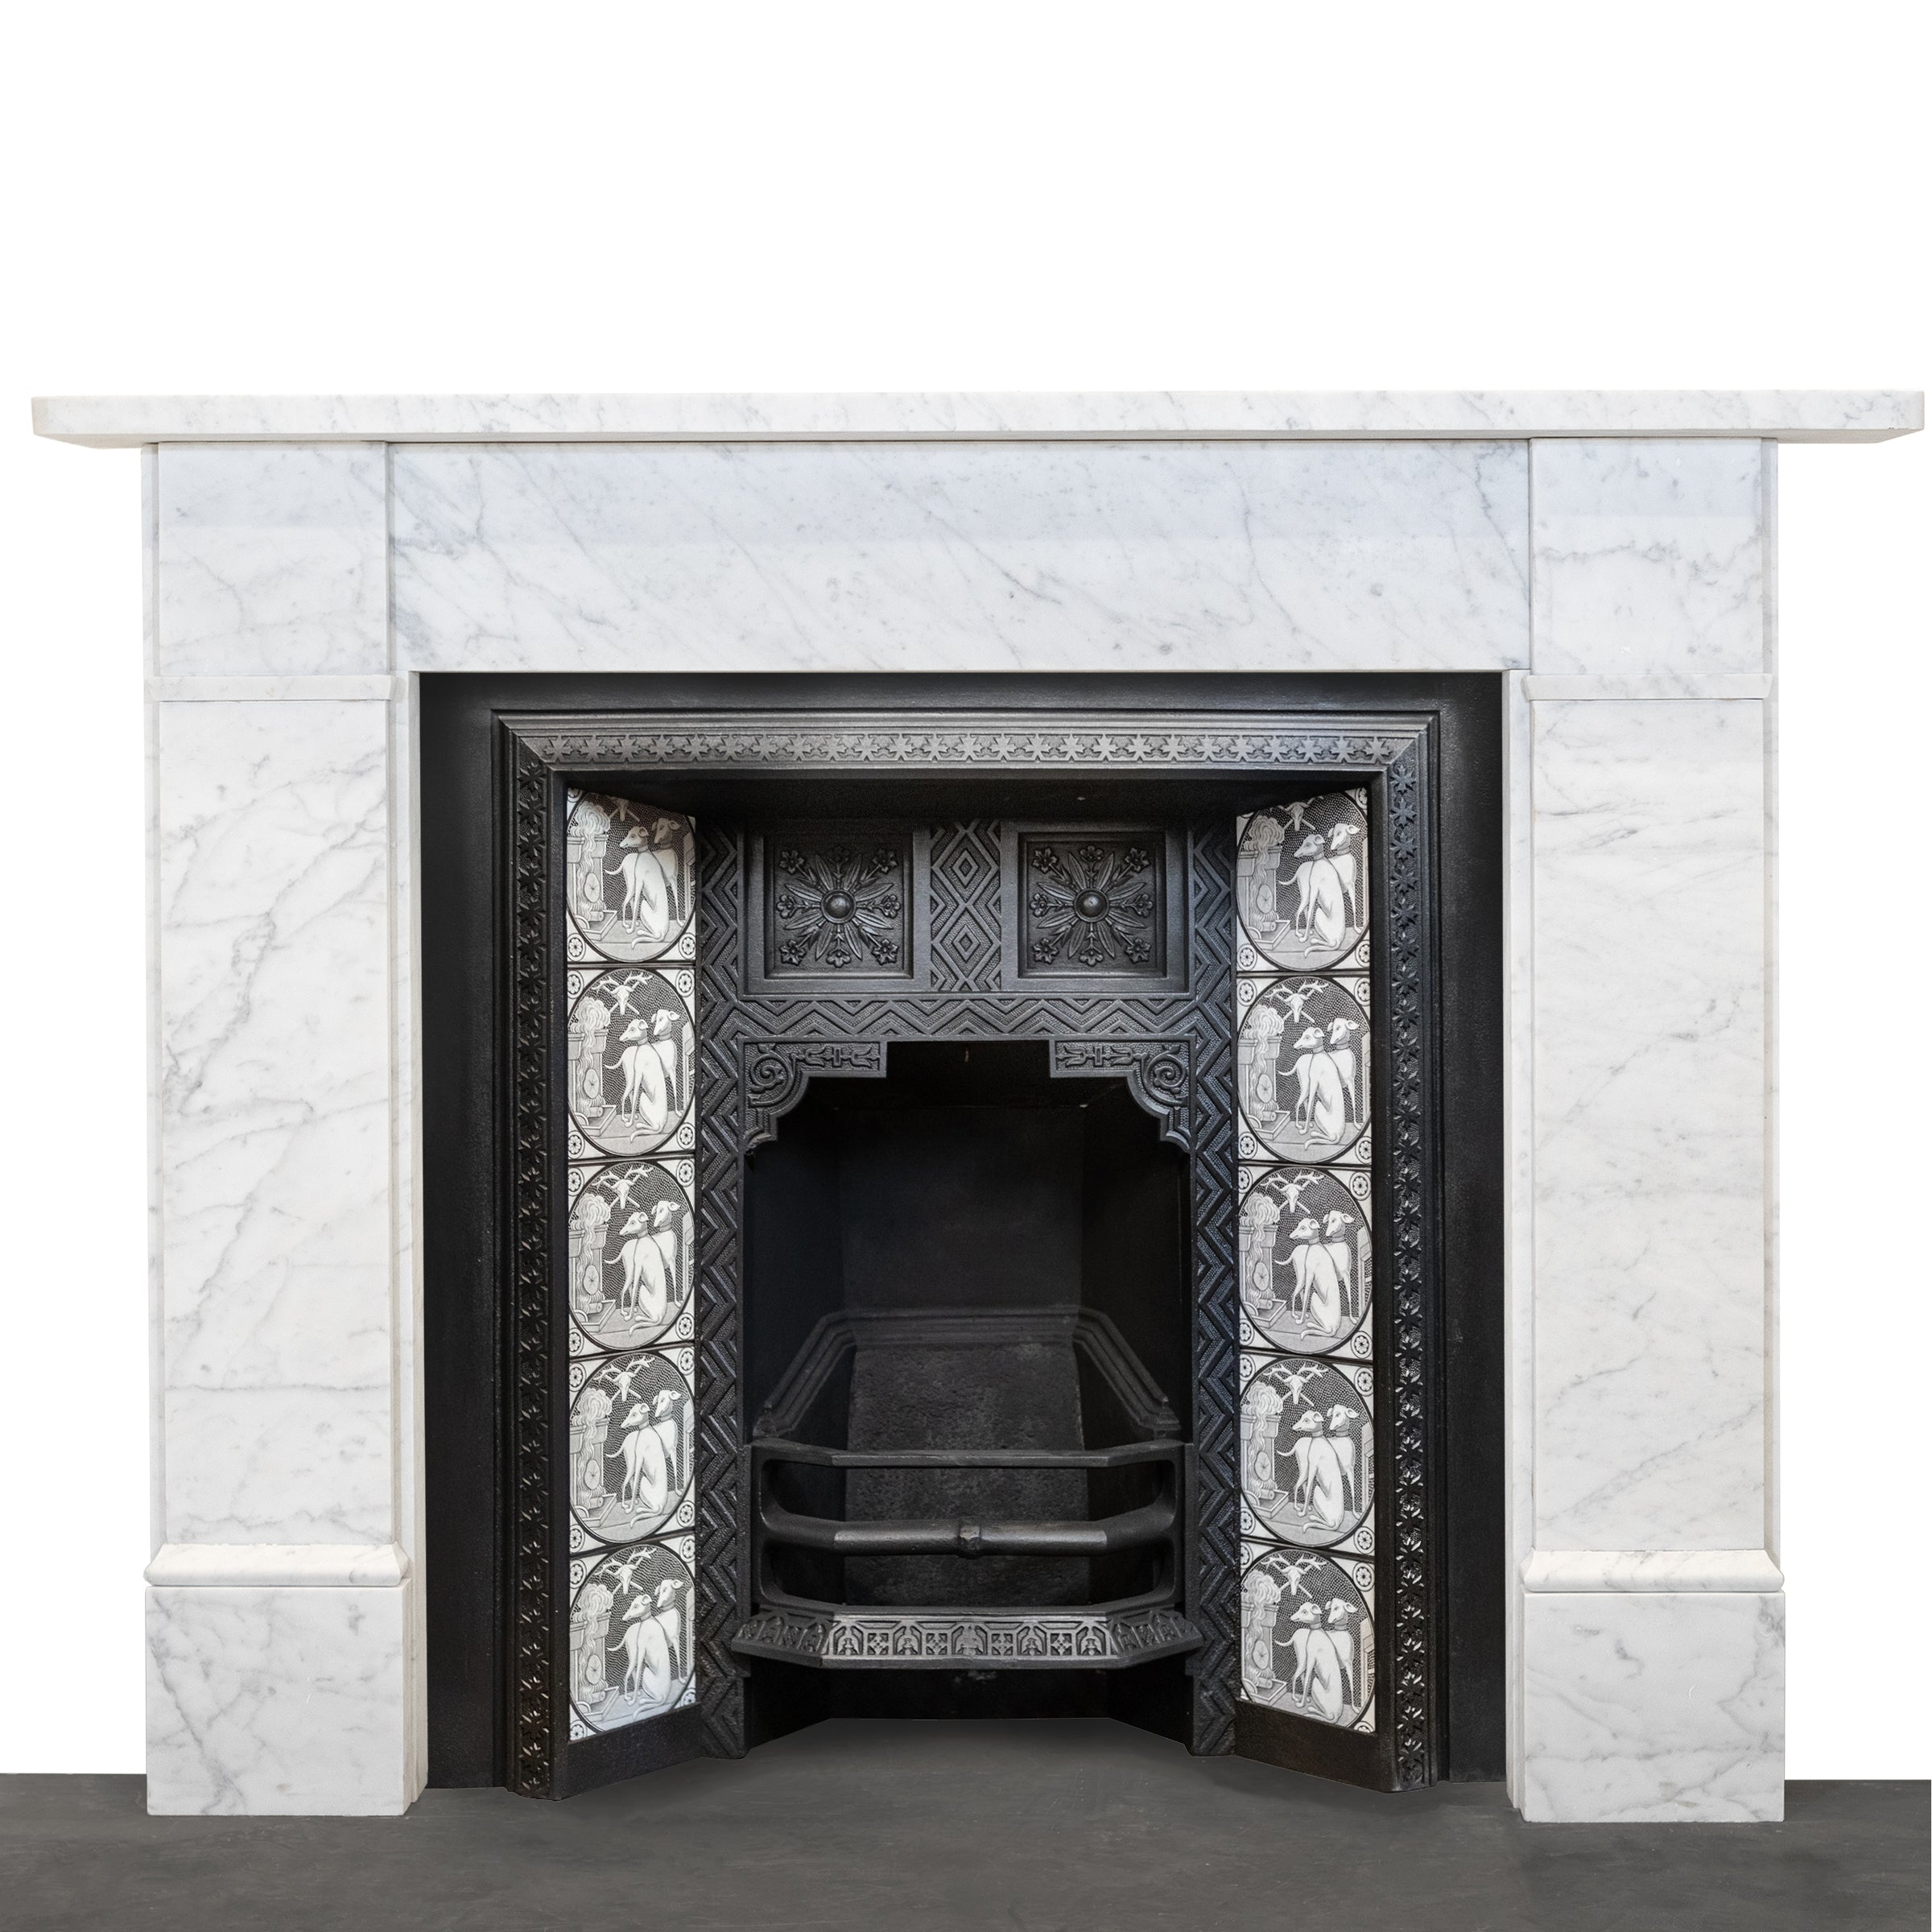 Victorian Style Fireplace Surround Crafted from Reclaimed Carrara Marble